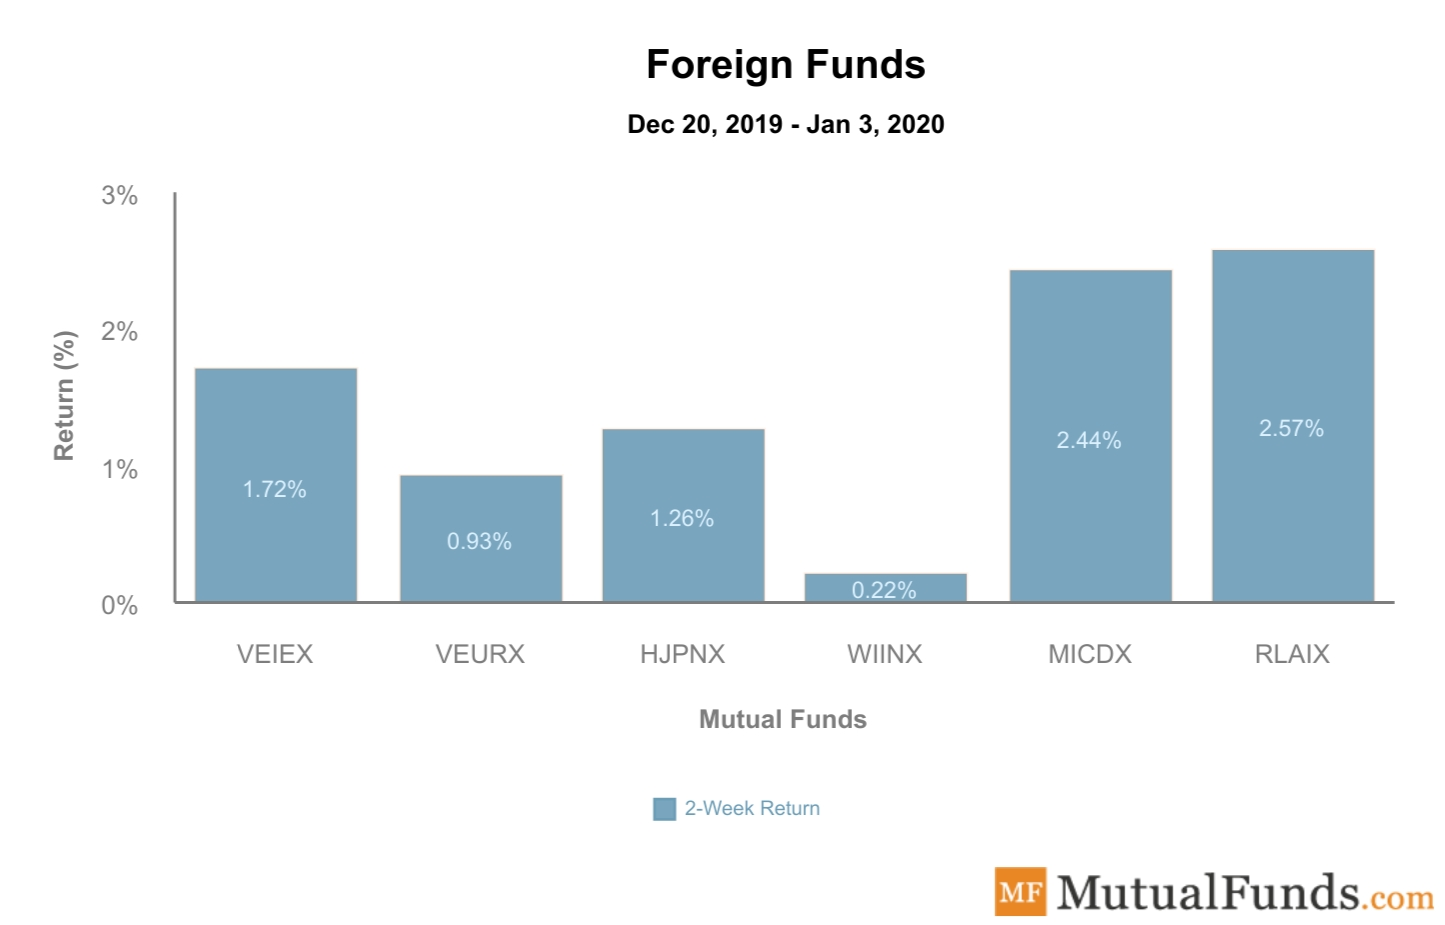 Foreign Funds Performance Jan 7, 2020